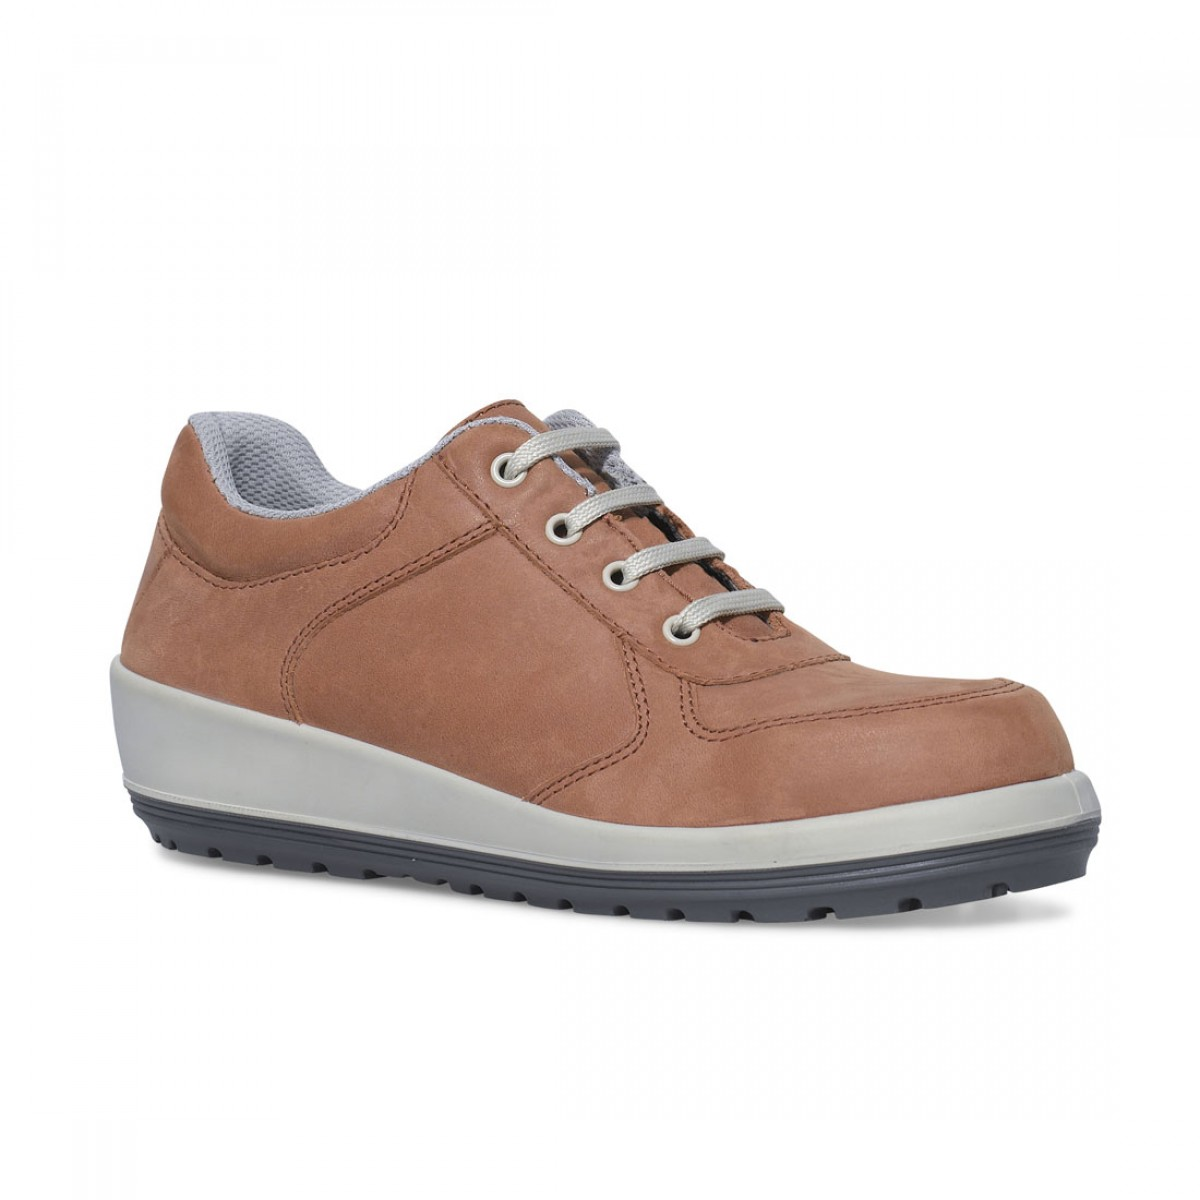 parade footwear brava brick leather womens casual s3